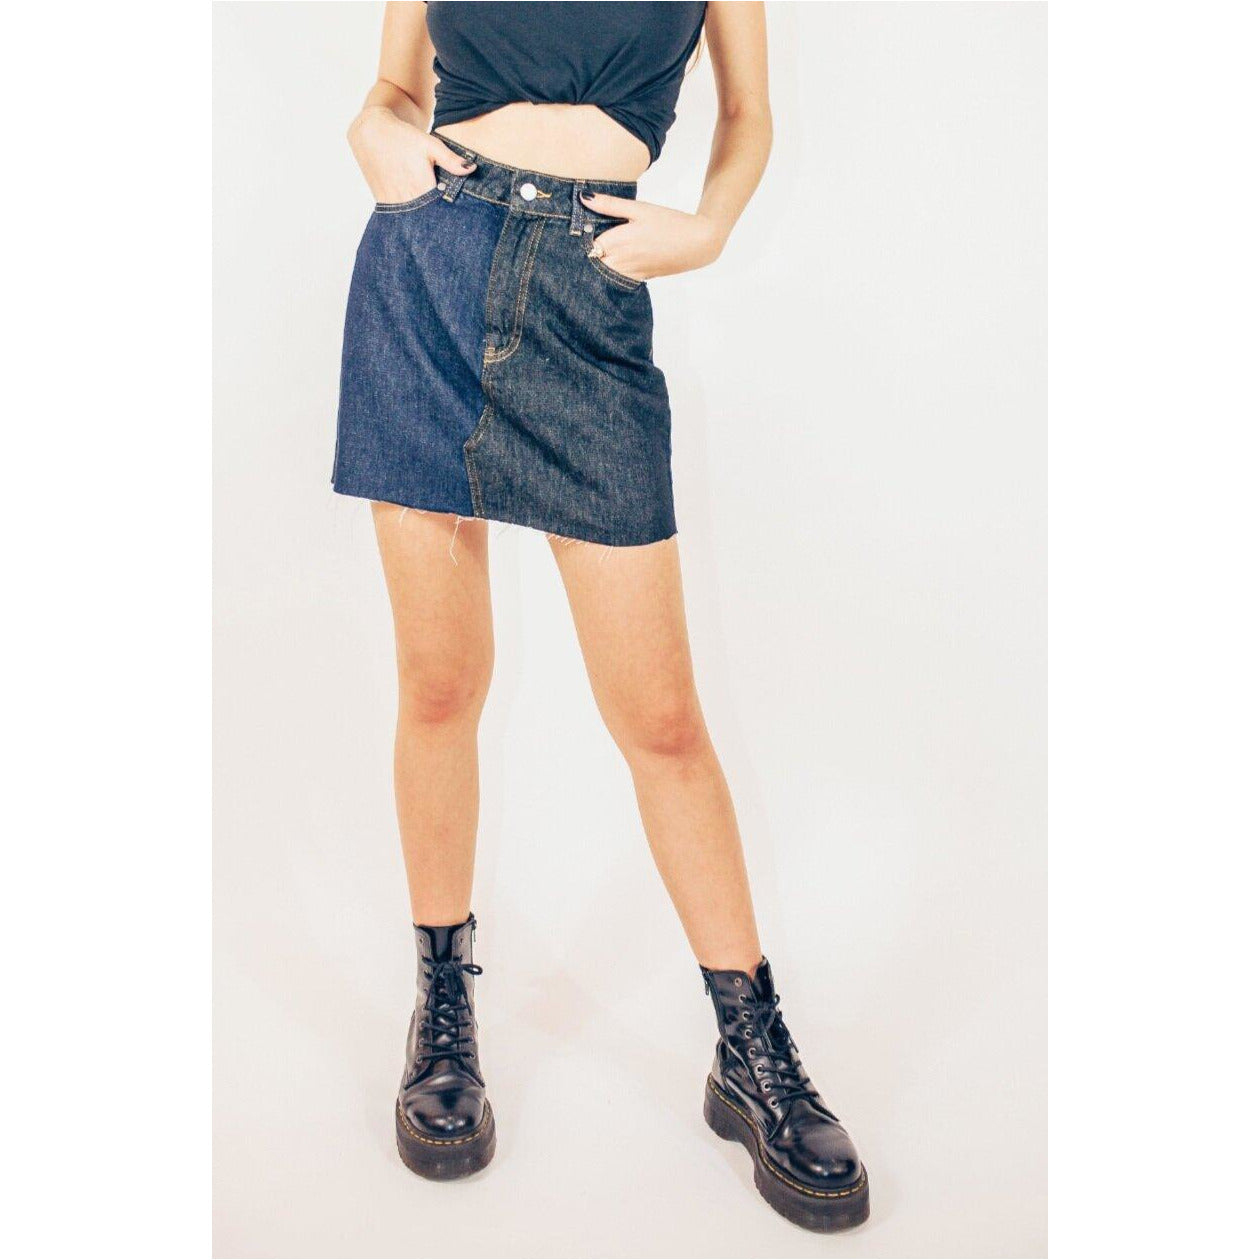 ALICE WOMENS MIX HIGH WAISTED ORGANIC SKIRT IN BLACK-BLUE.